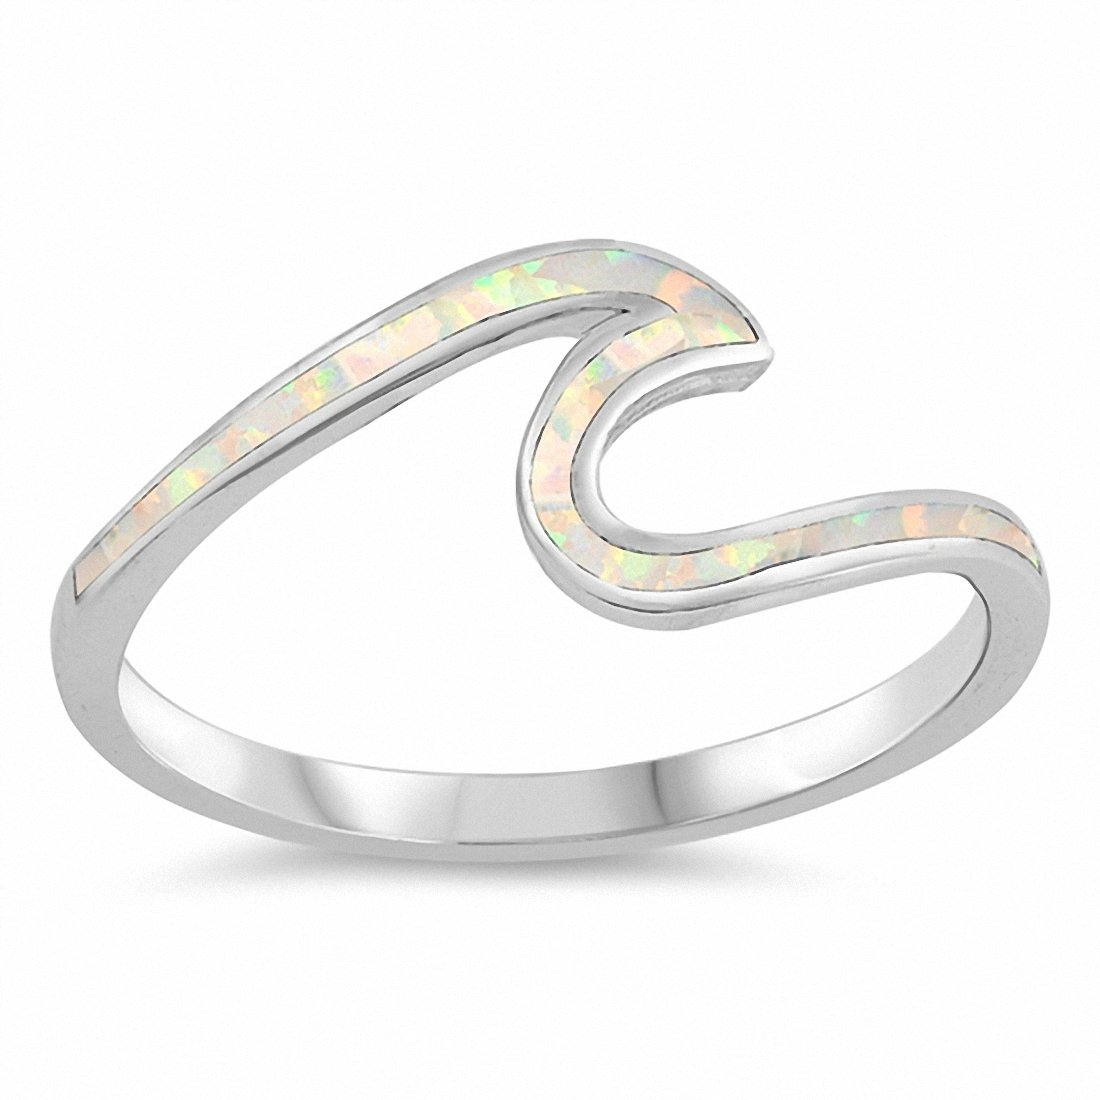 Wave Ring Created Opal 925 Sterling Silver Choose Color